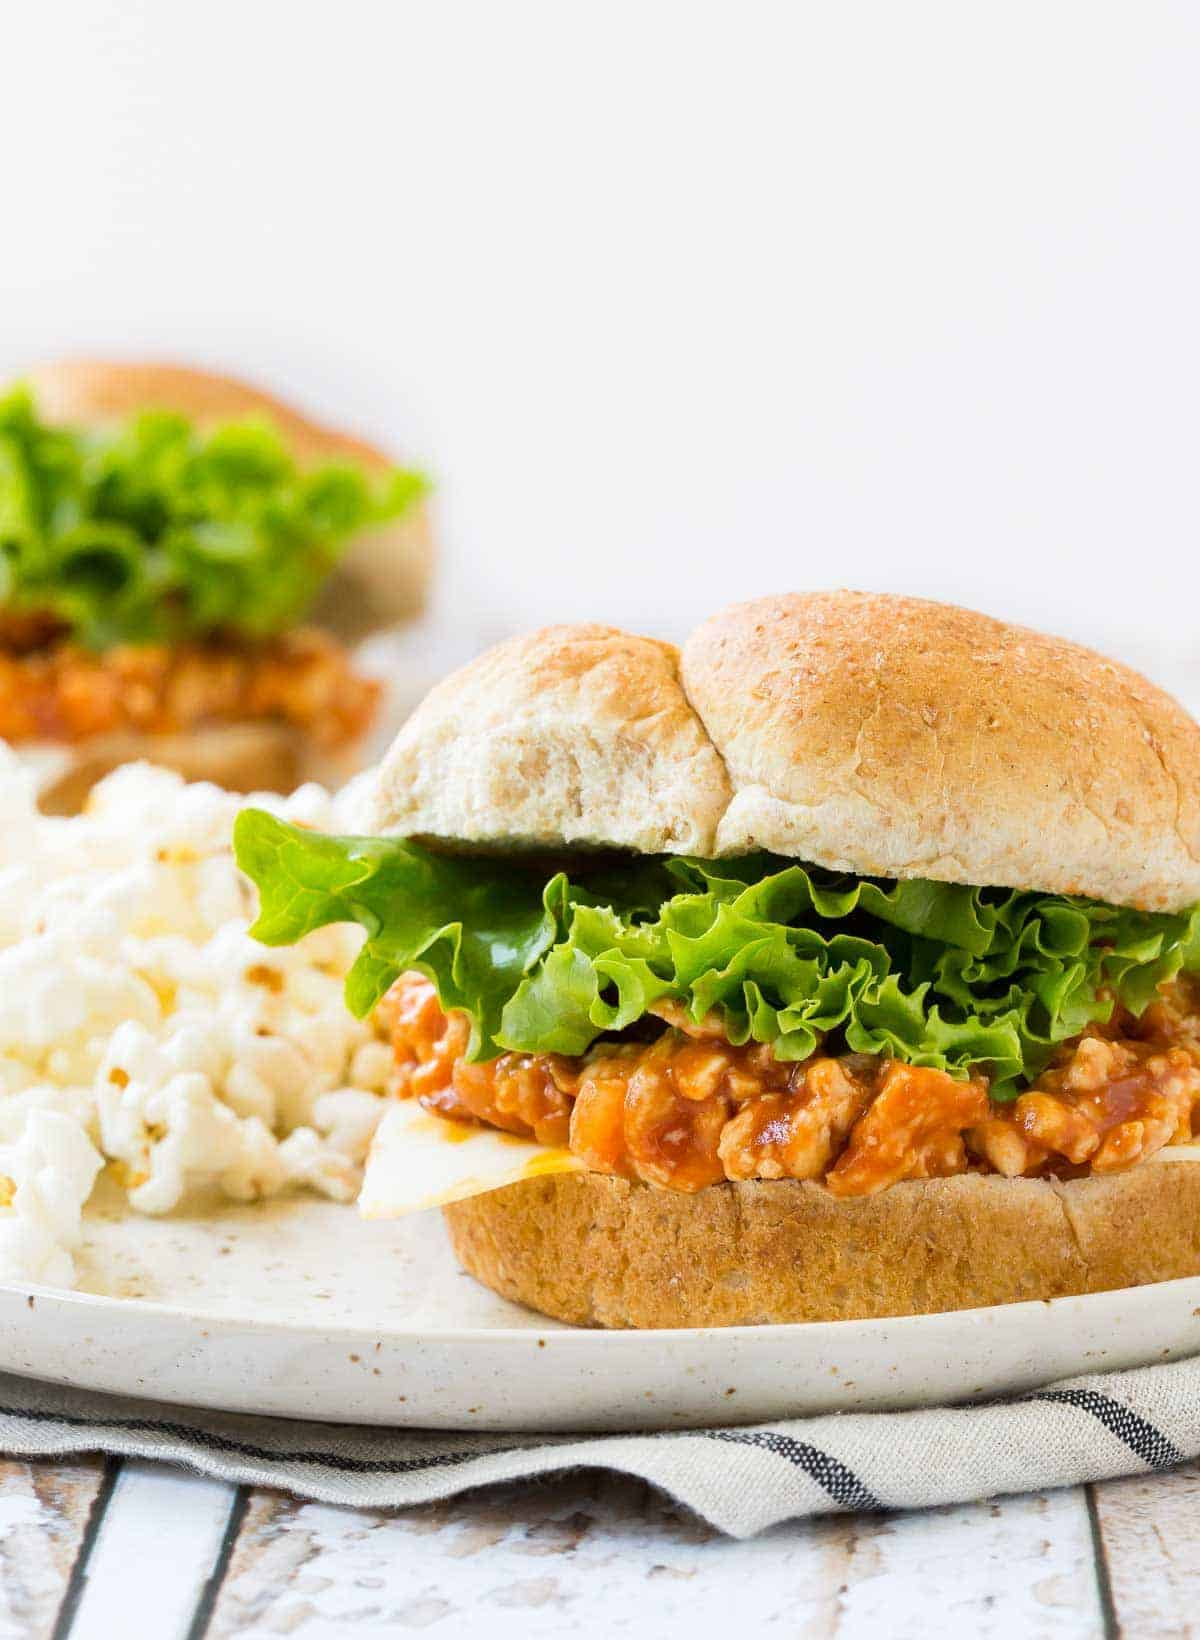 Sloppy Joe on bun with lettuce and cheese, on plate with popcorn.